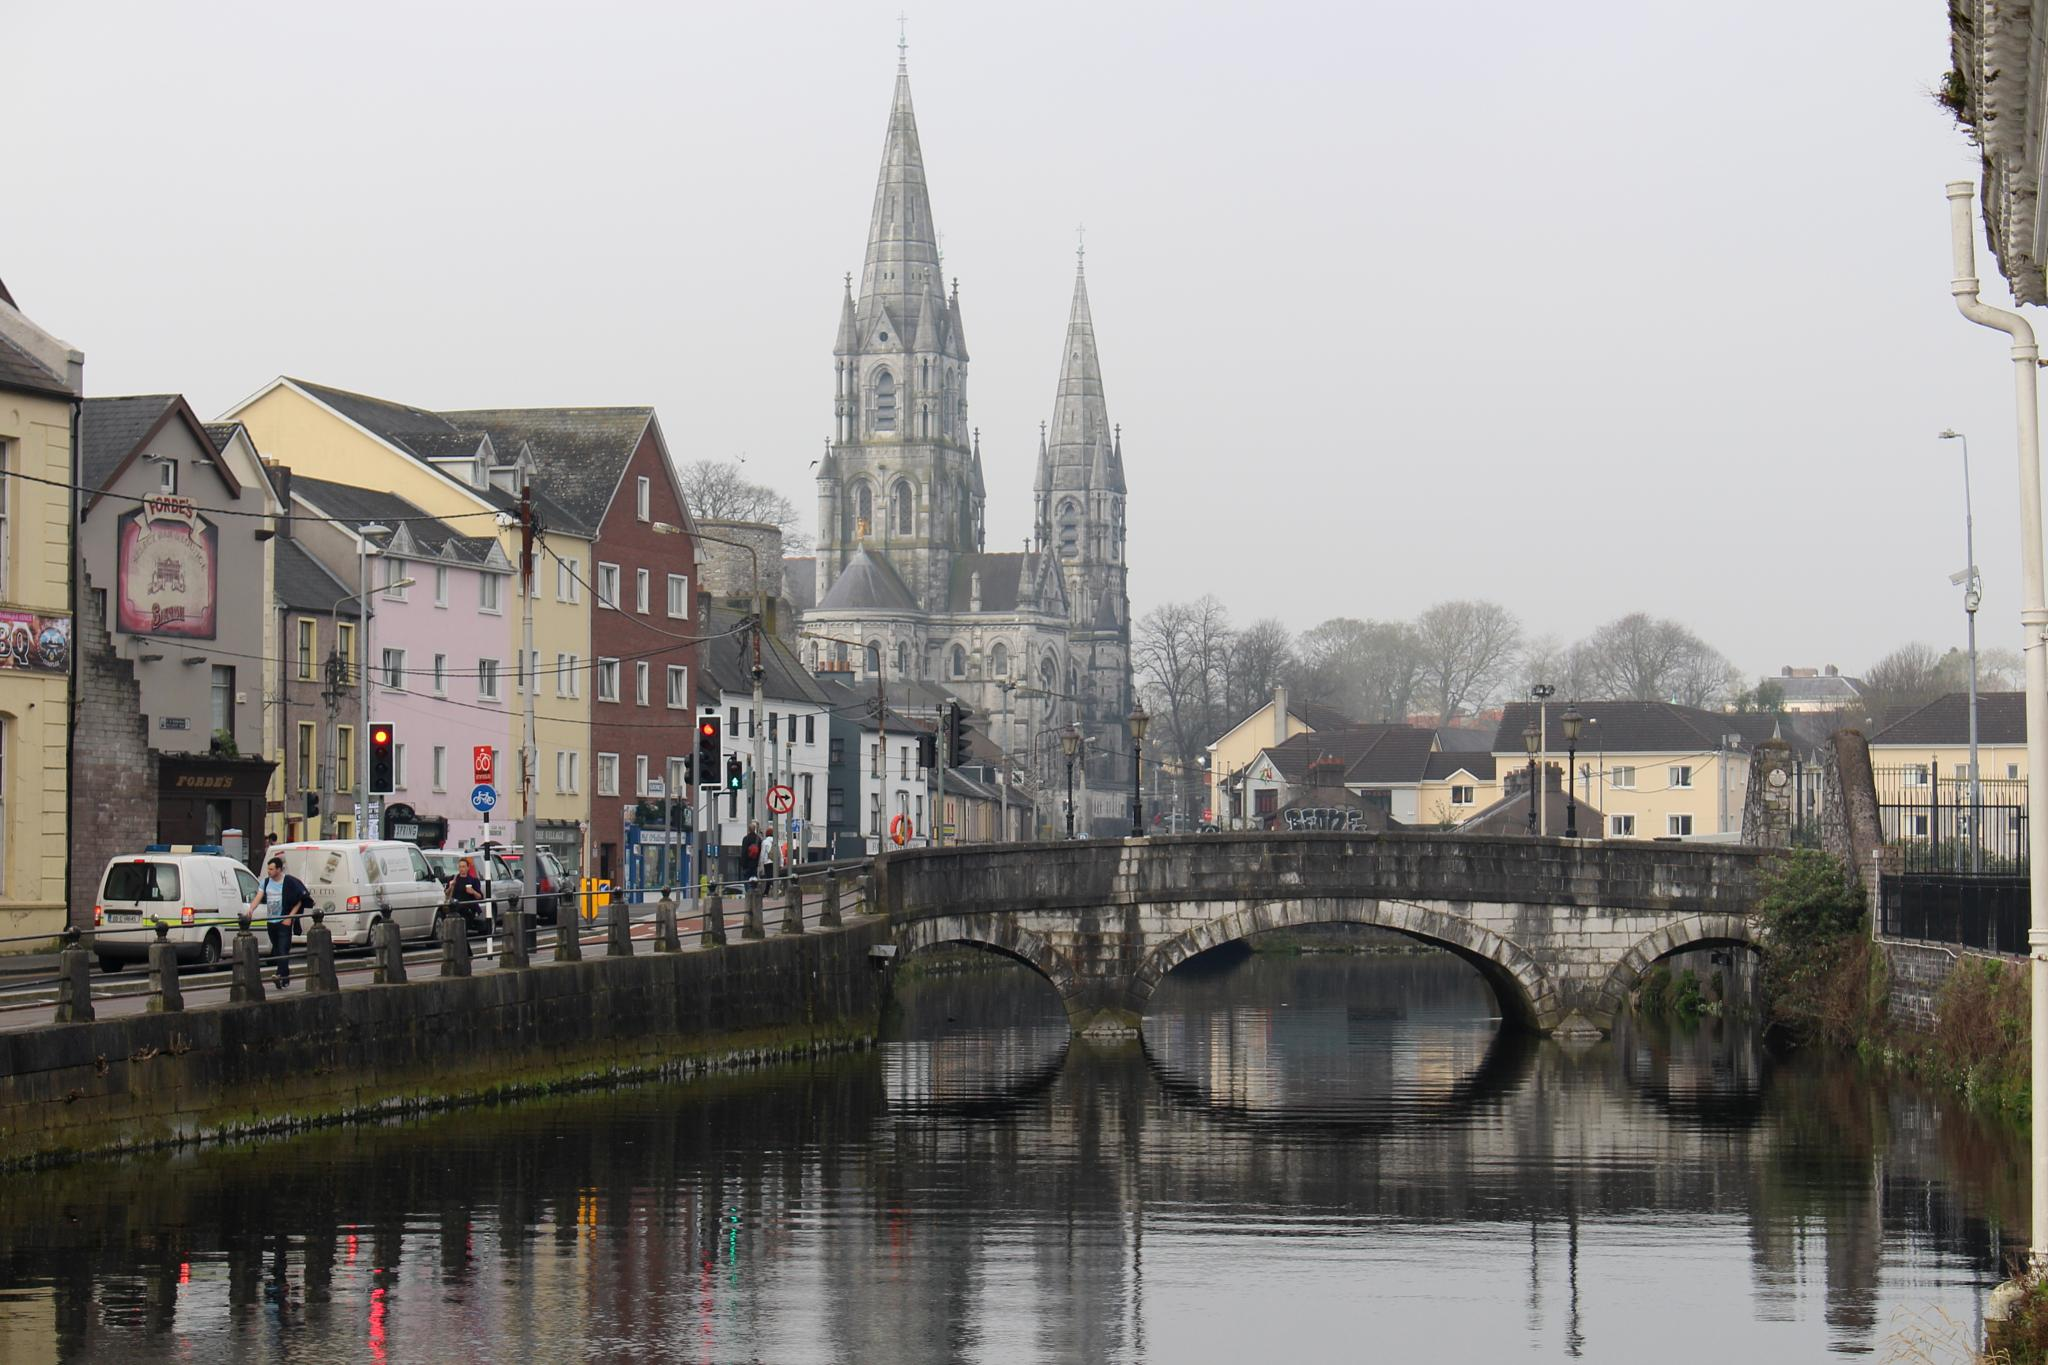 A stroll downtown Cork by Stig Norre Rasmussen